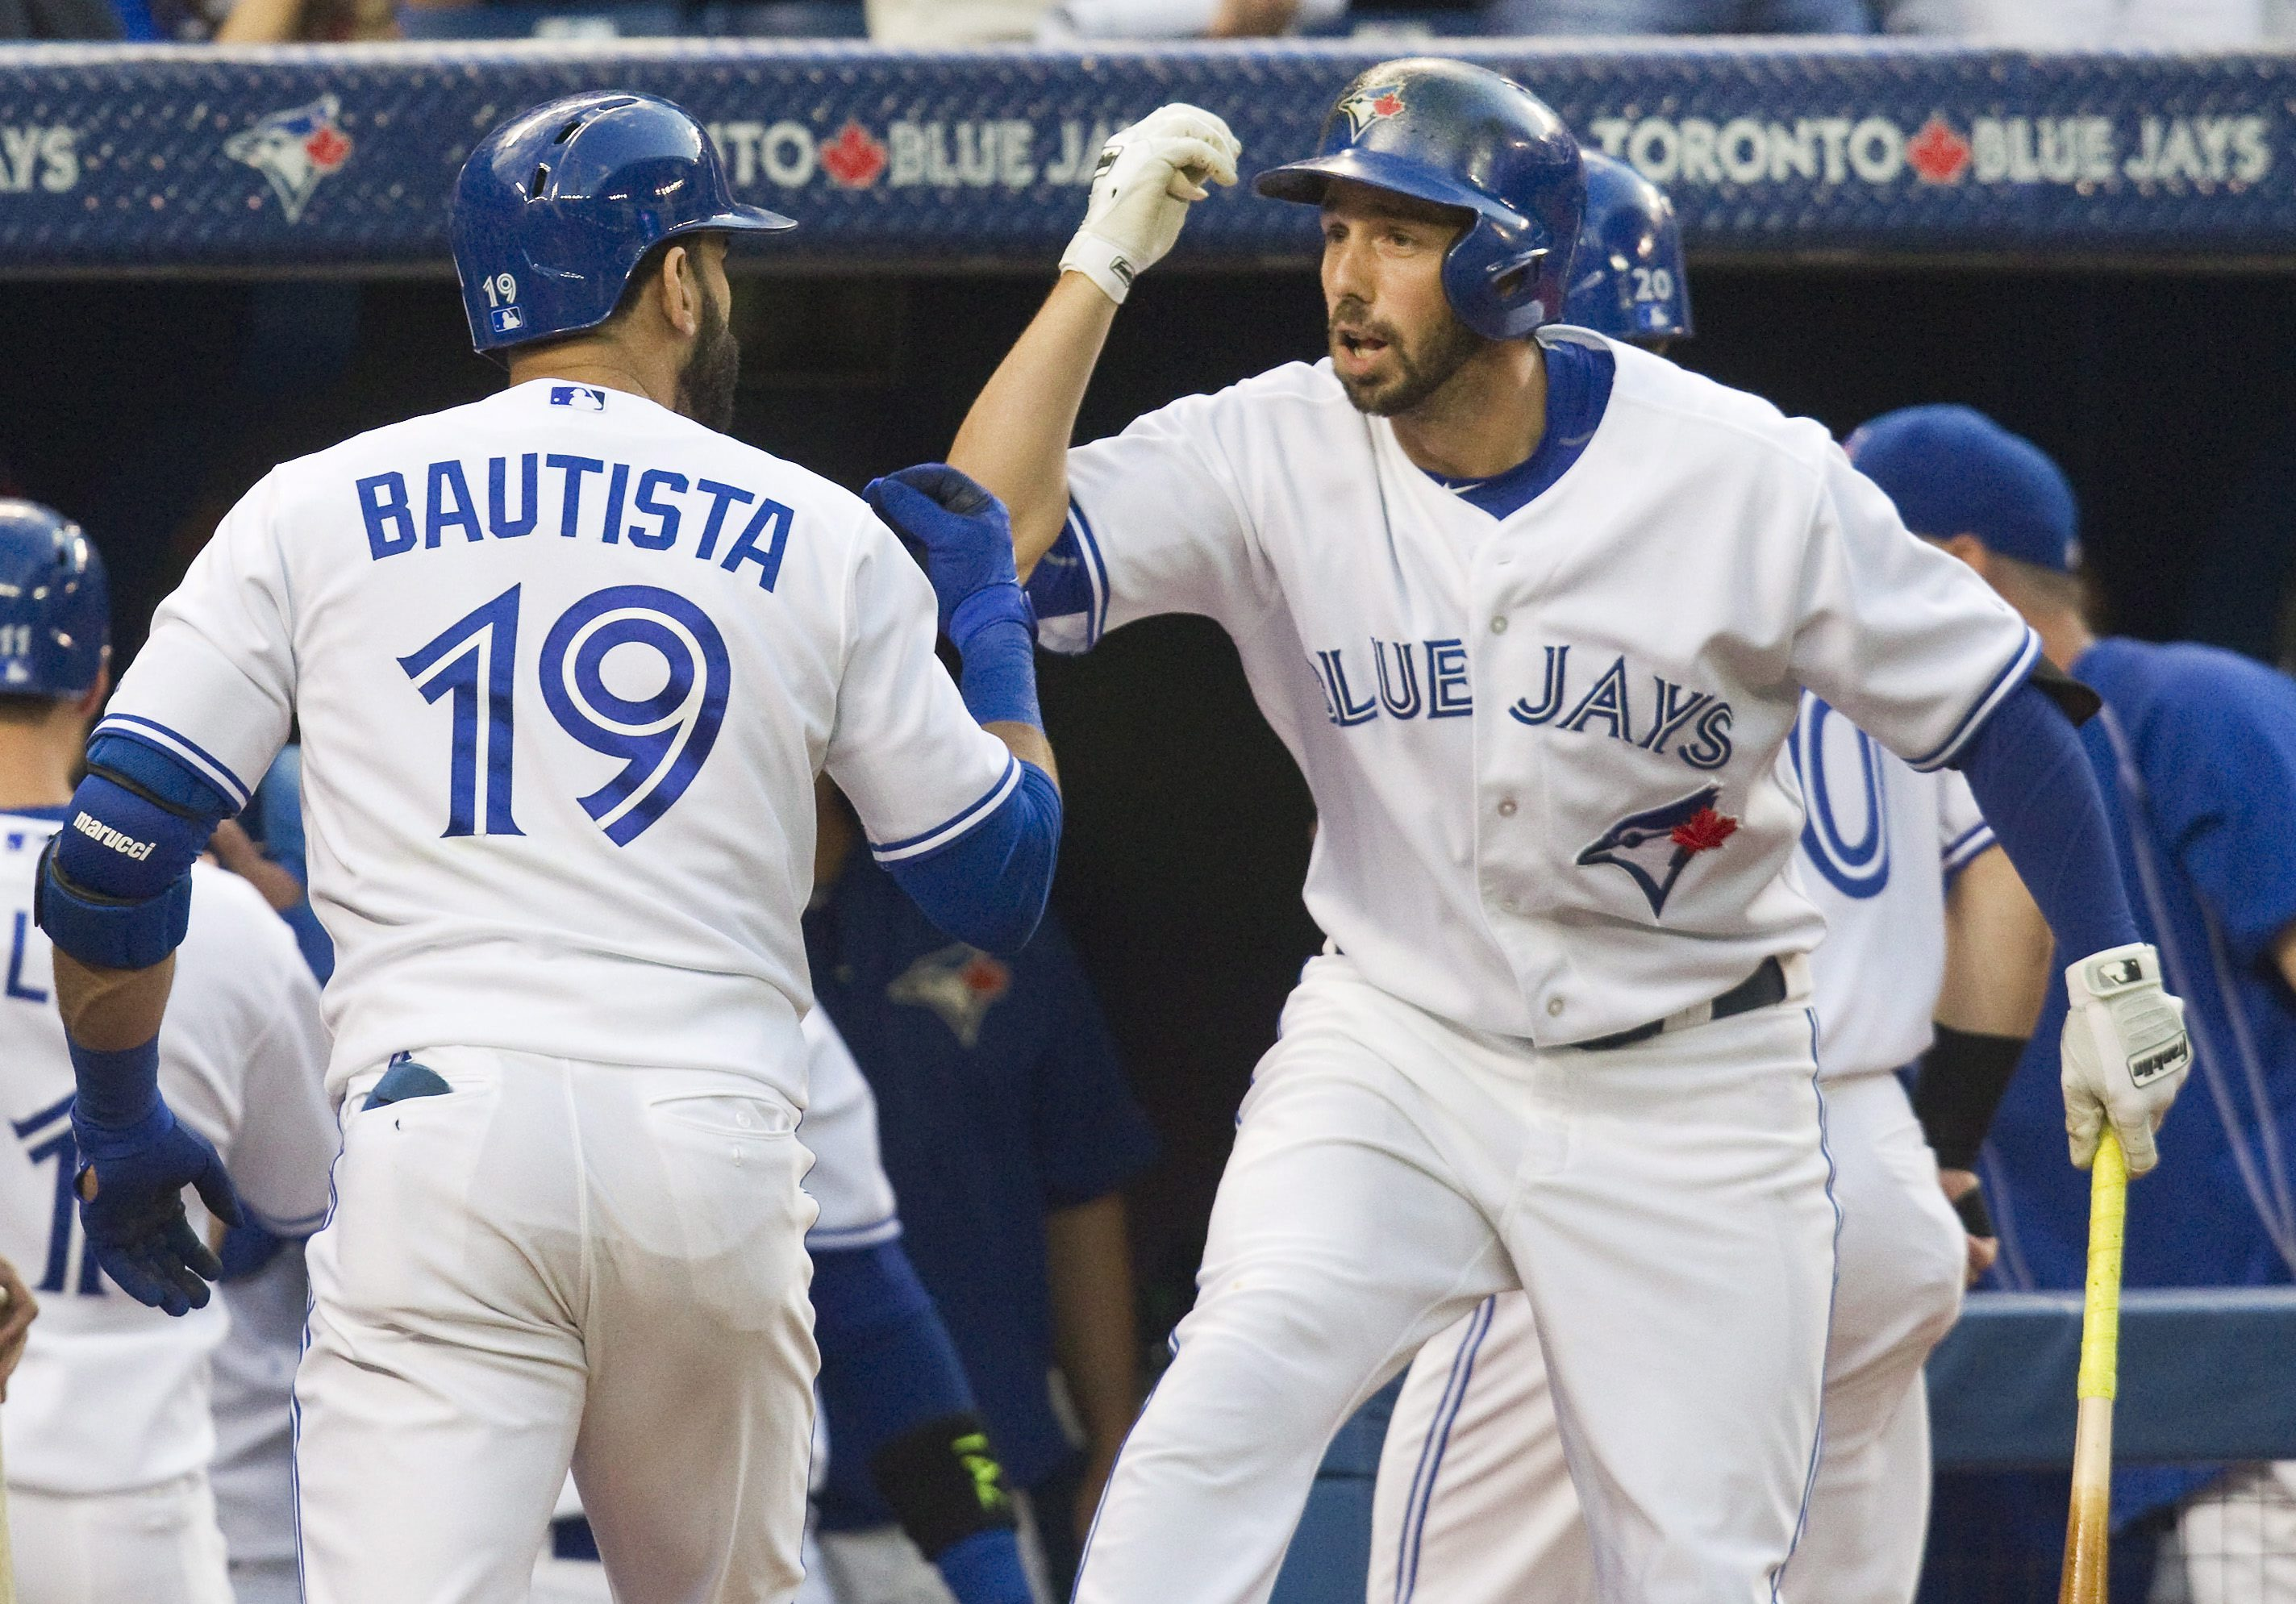 Toronto Blue Jays' Chris Colabello congratulates Jose Bautista after Bautista hit a grand slam against the Minnesota Twins during the second inning of a baseball game Wednesday, Aug. 5, 2015, in Toronto. (Fred Thornhill/The Canadian Press via AP)